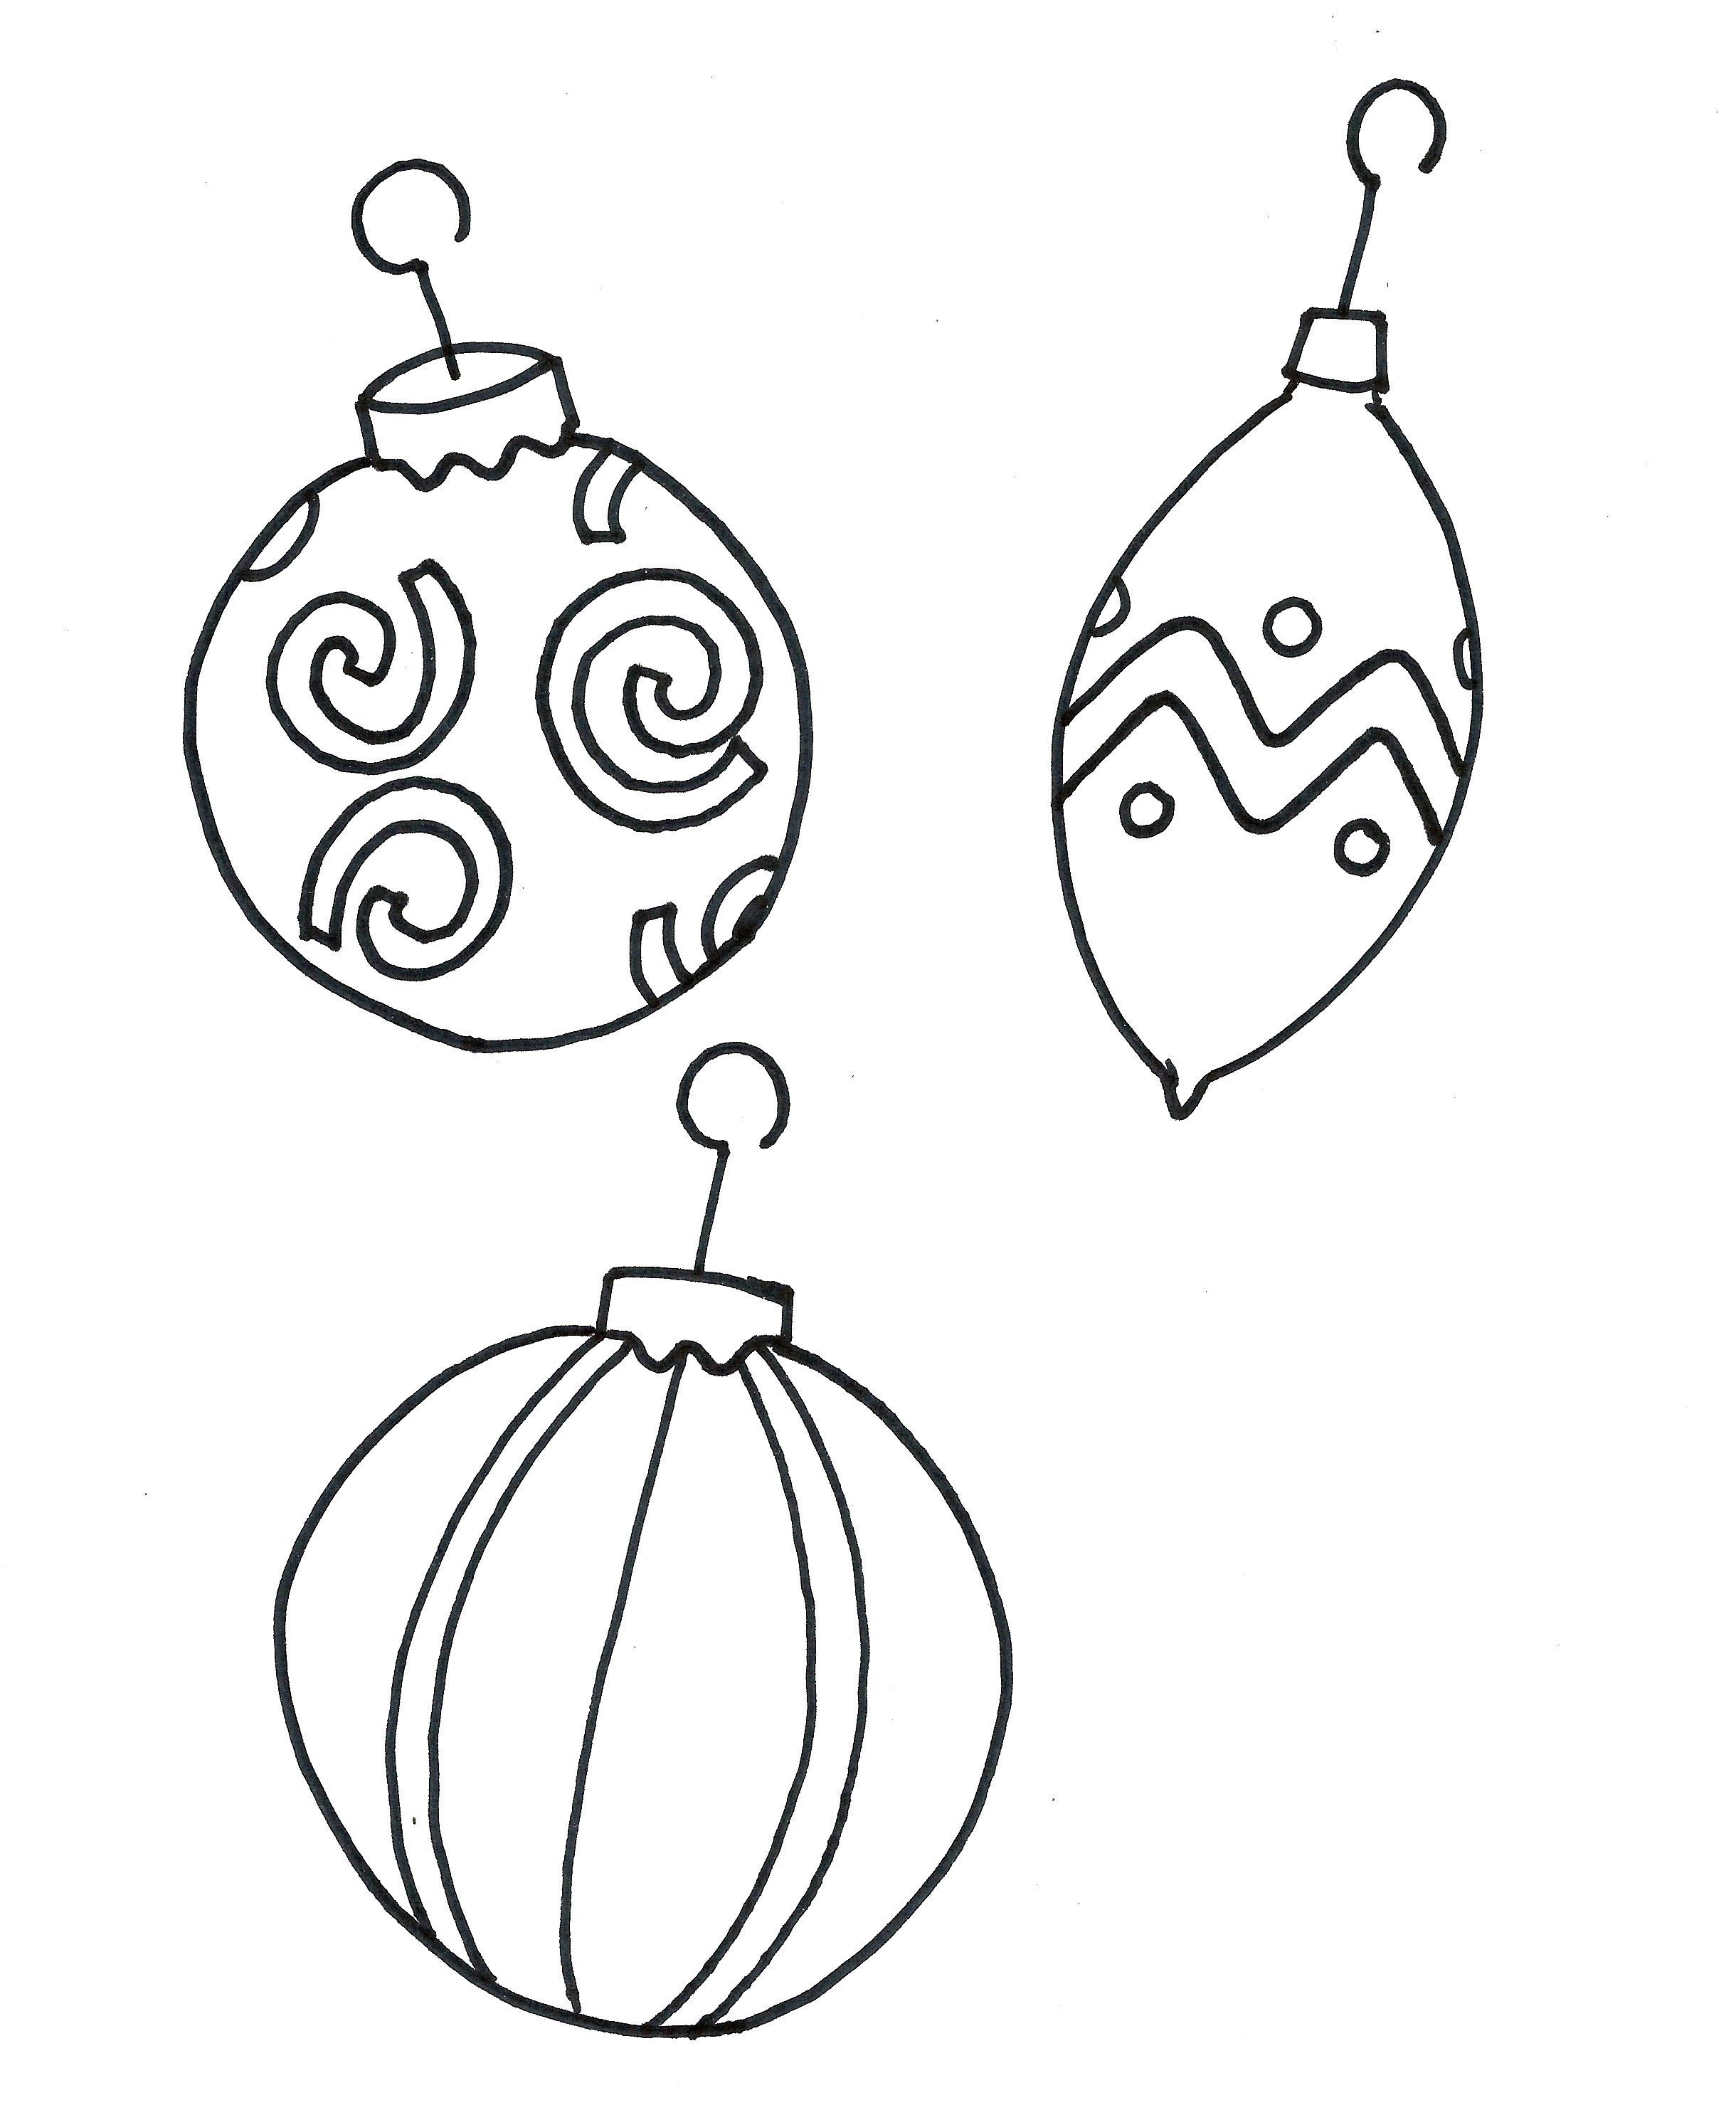 photograph relating to Ornament Template Printable identified as Xmas Ornament Printables For Xmas - Xmas